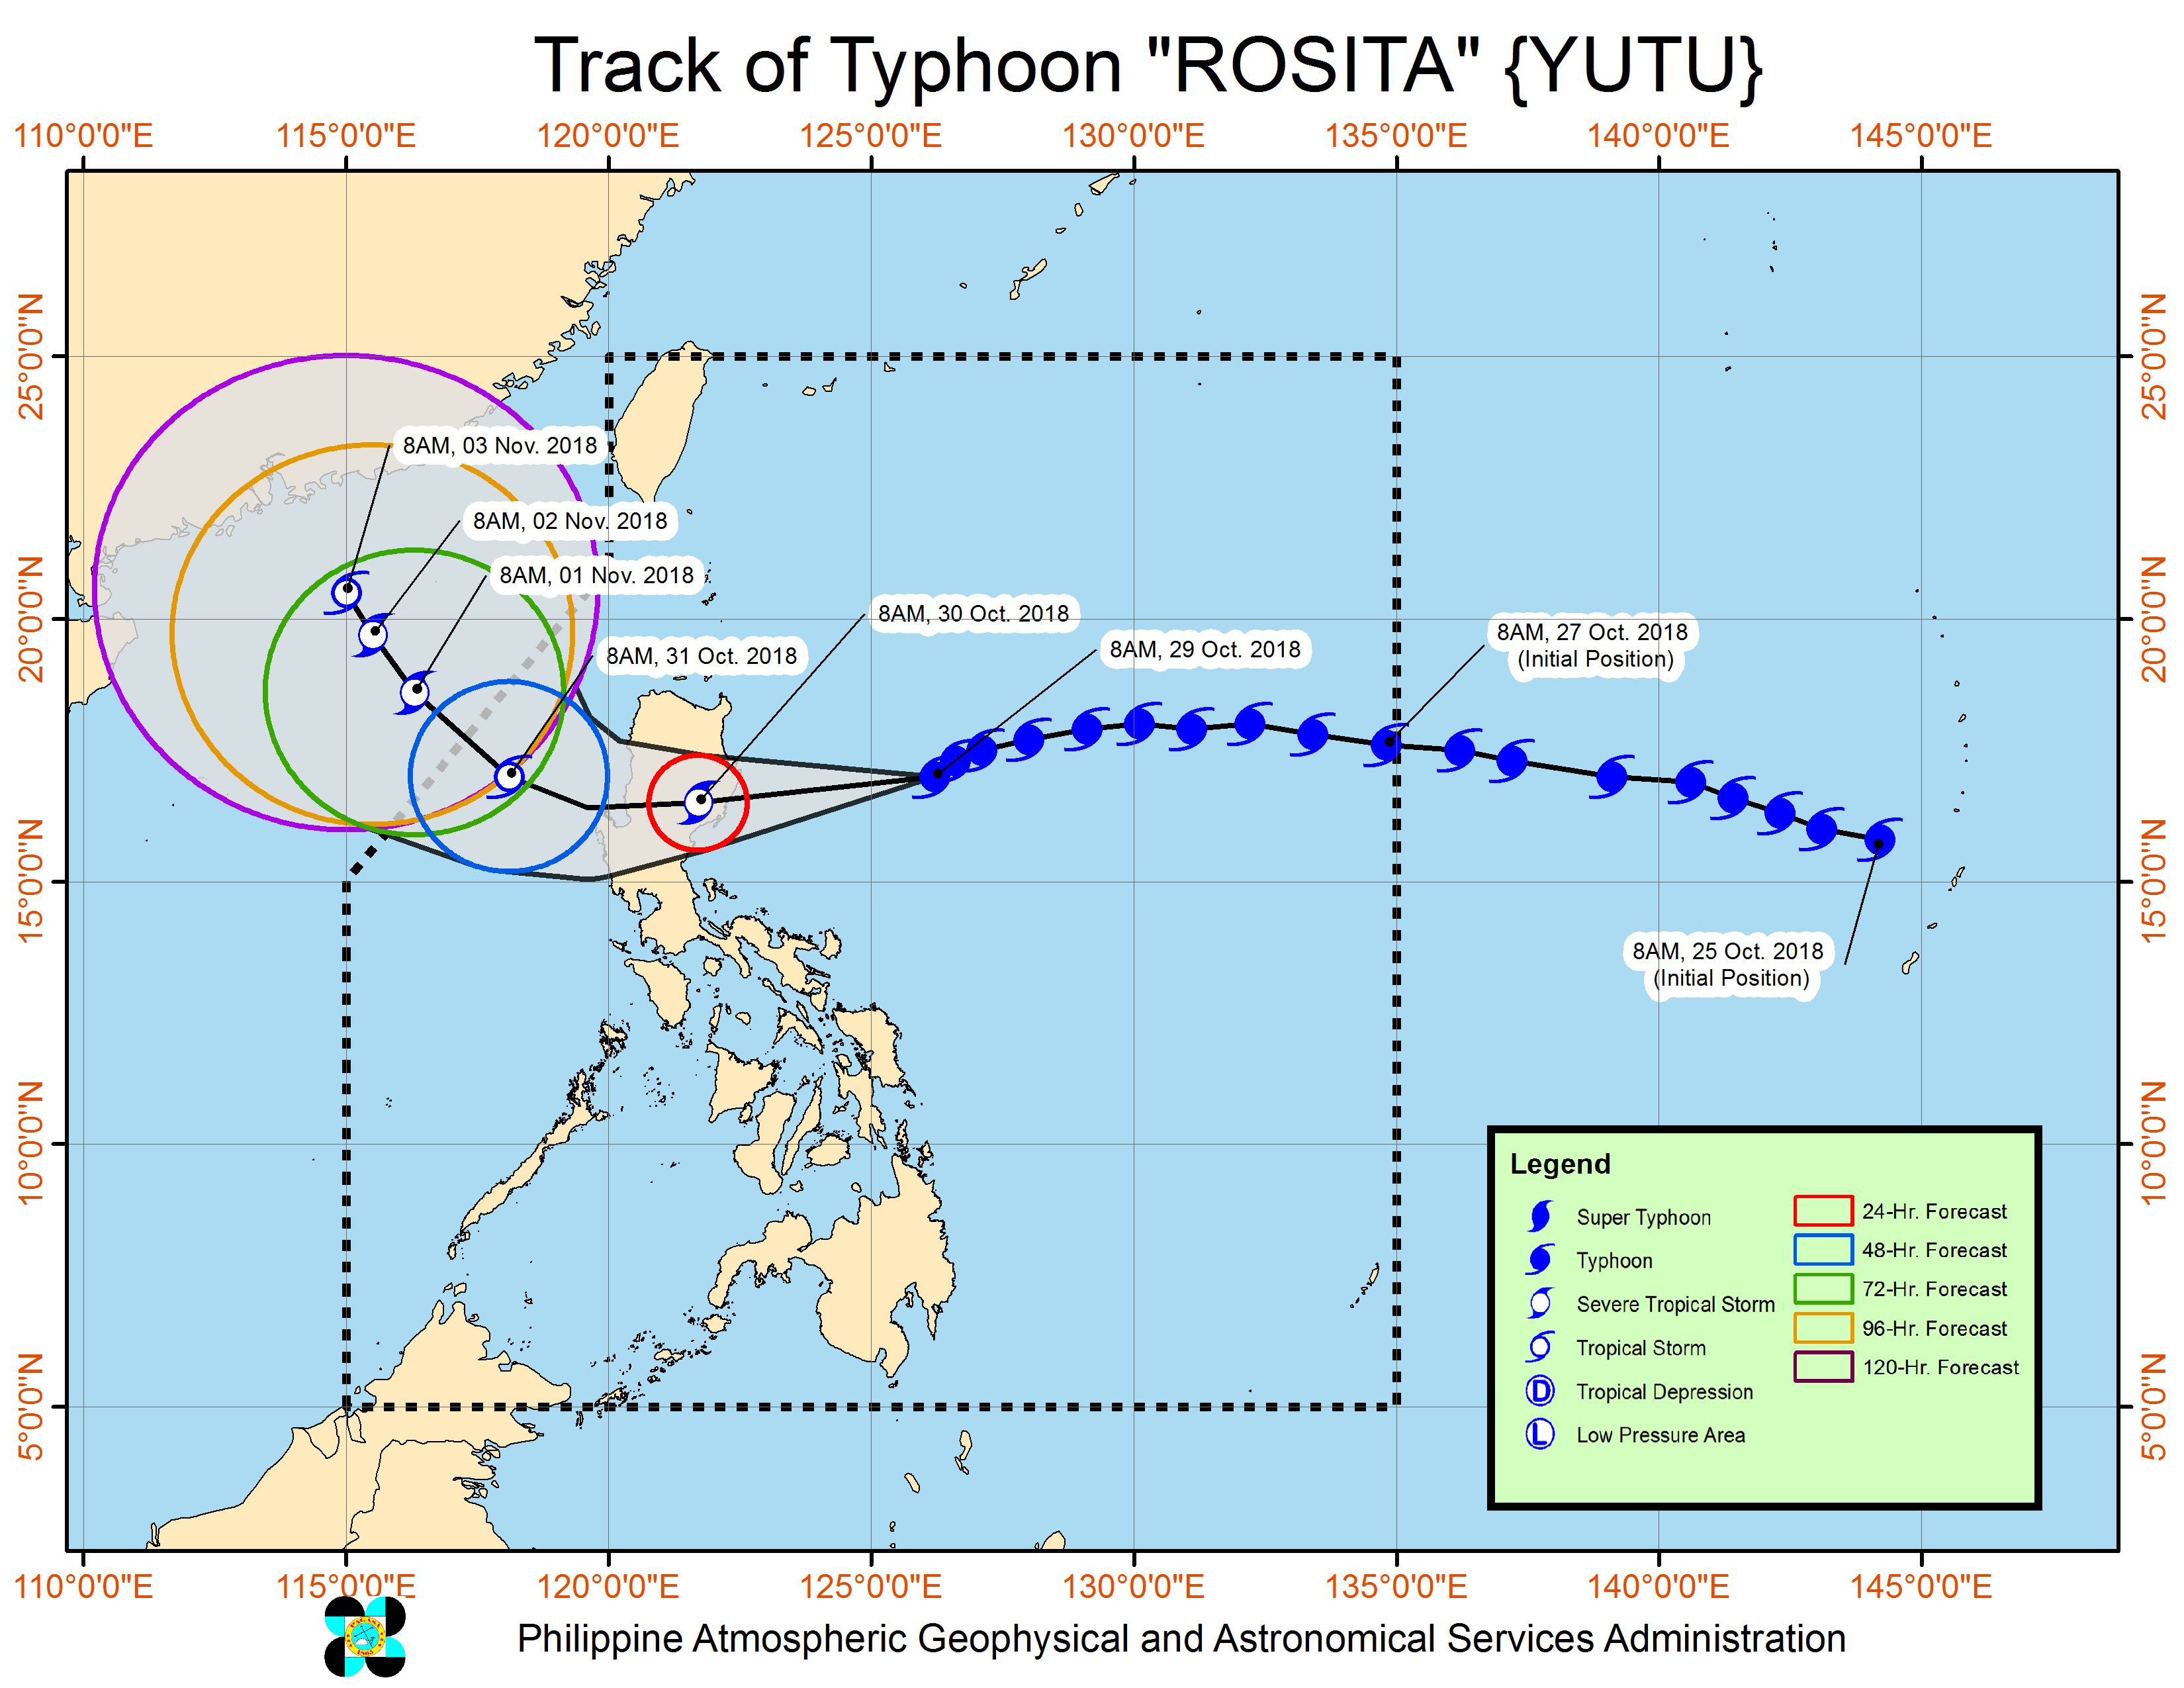 Forecast track of Typhoon Rosita (Yutu) as of October 29, 2018, 11 am. Image from PAGASA